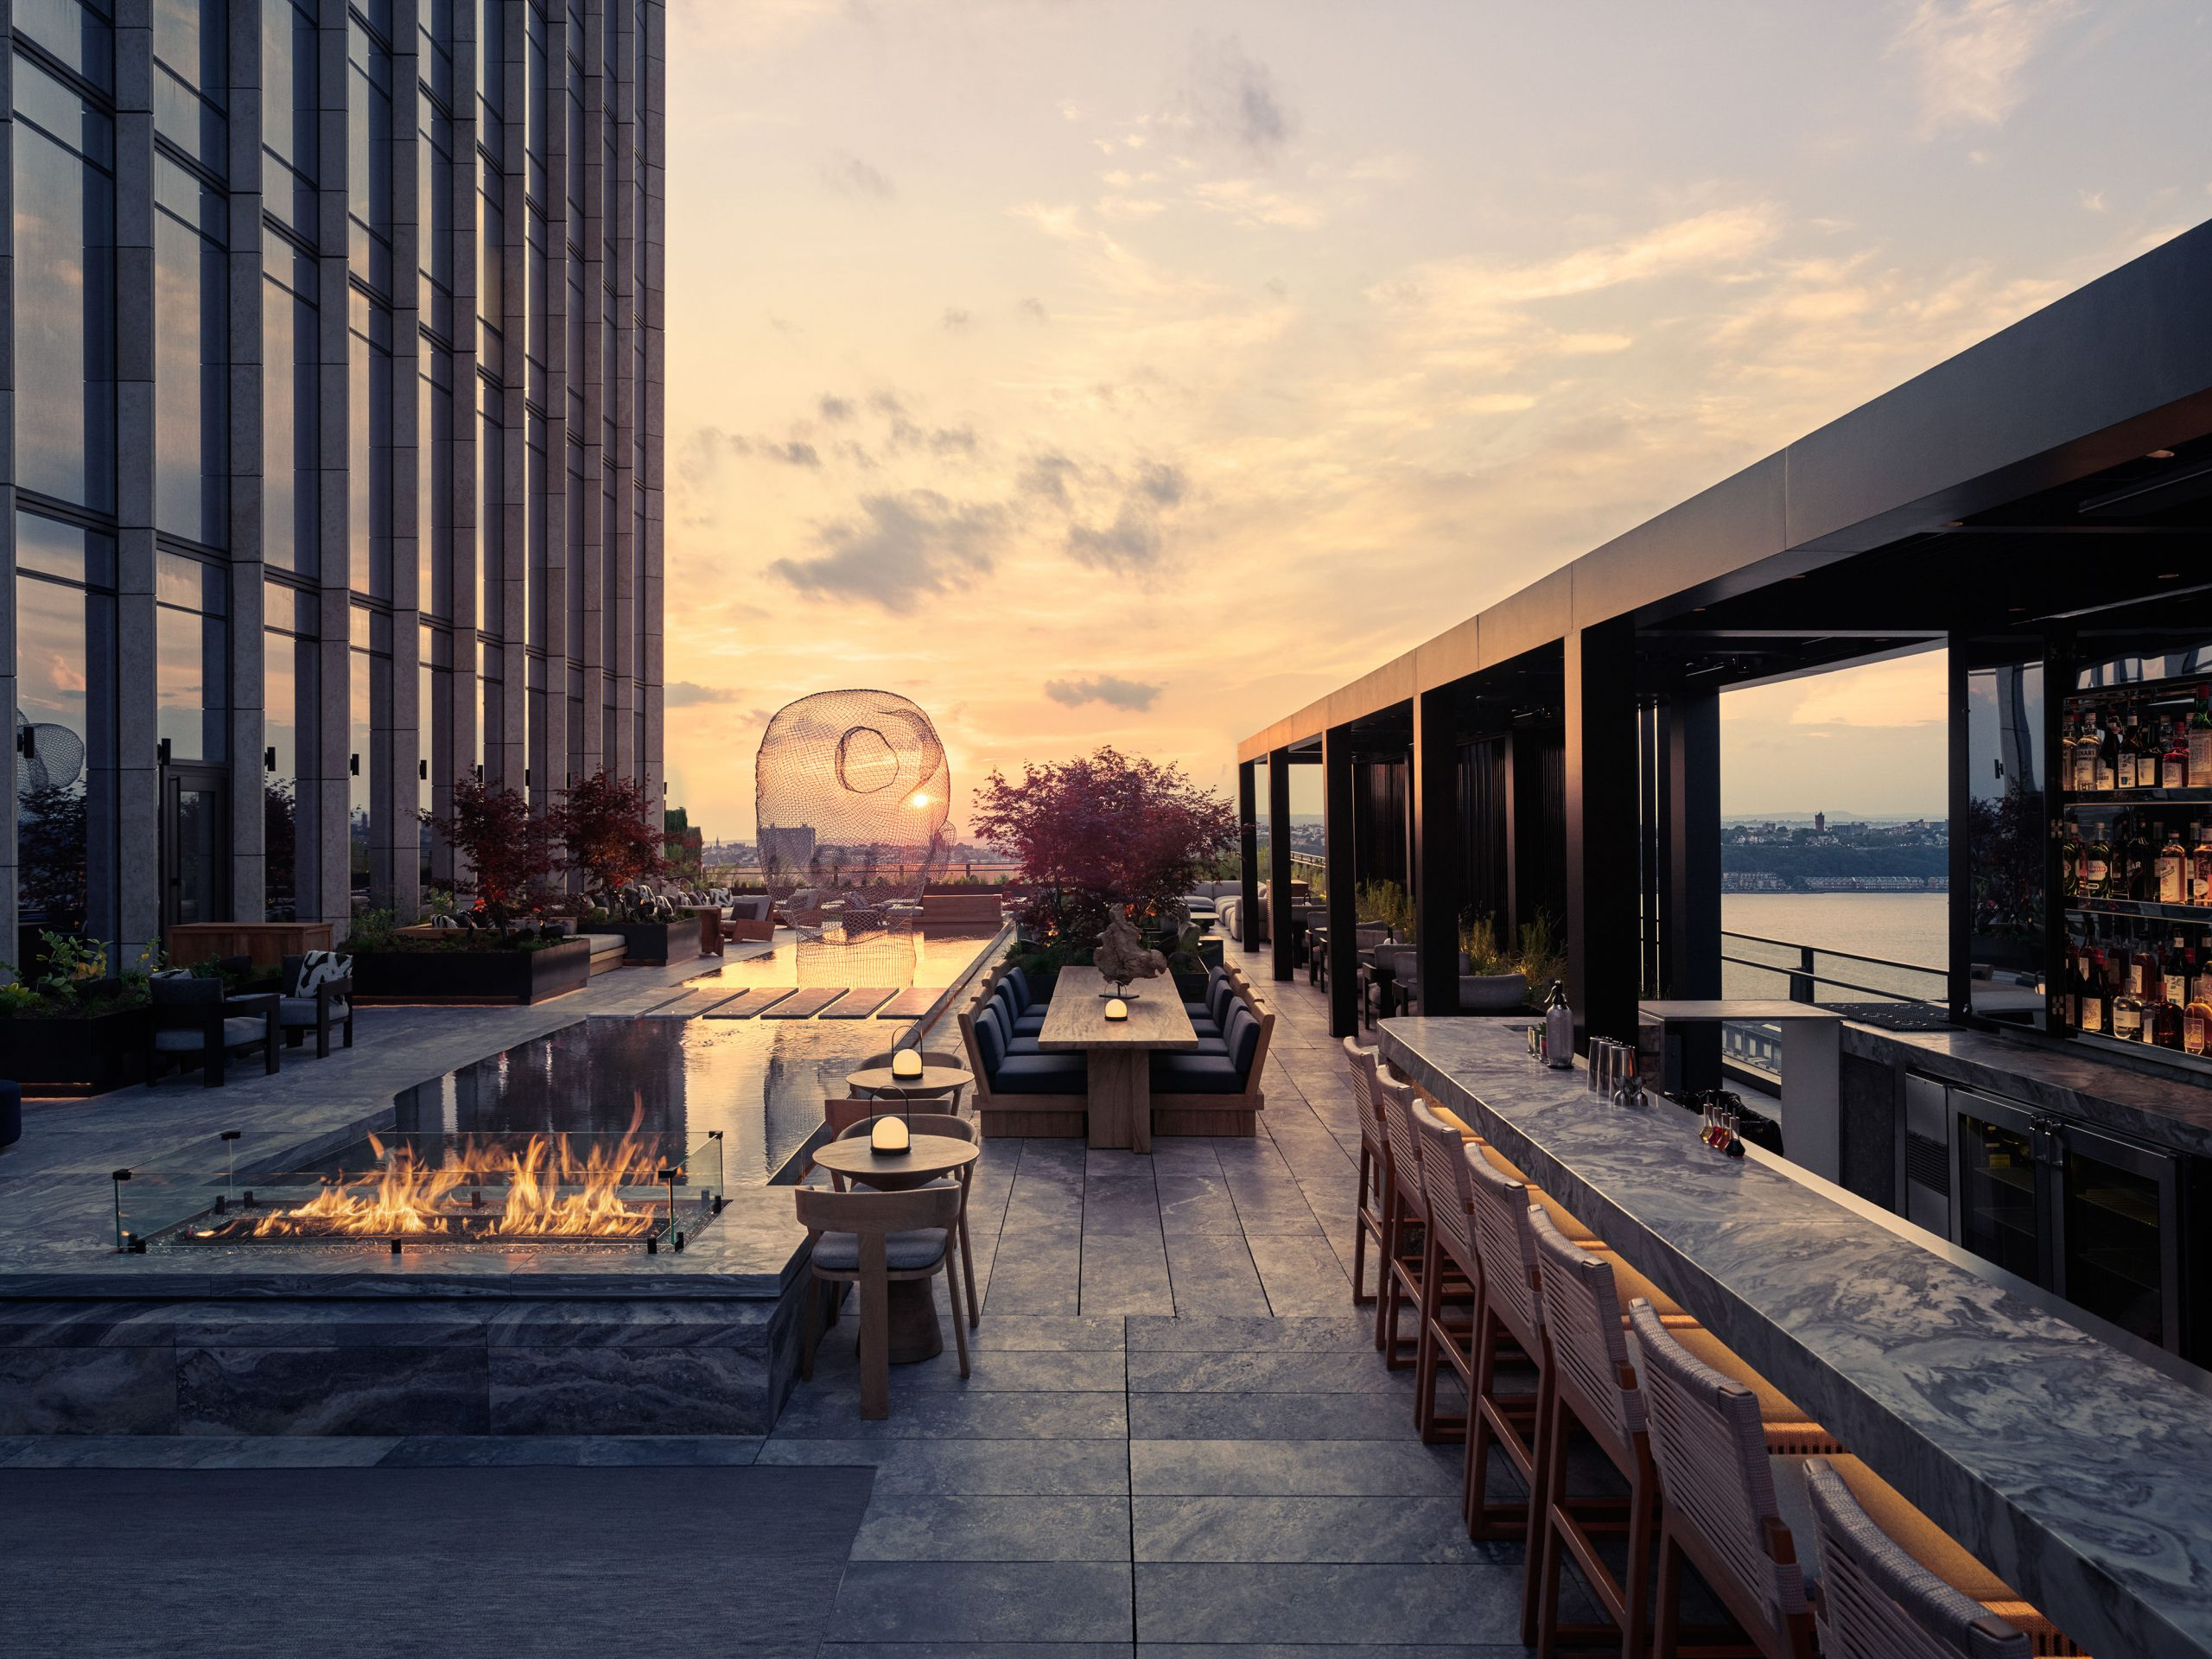 electriclemon-outdoor-rooftop-terrace-dusk-mfrzd-scaled